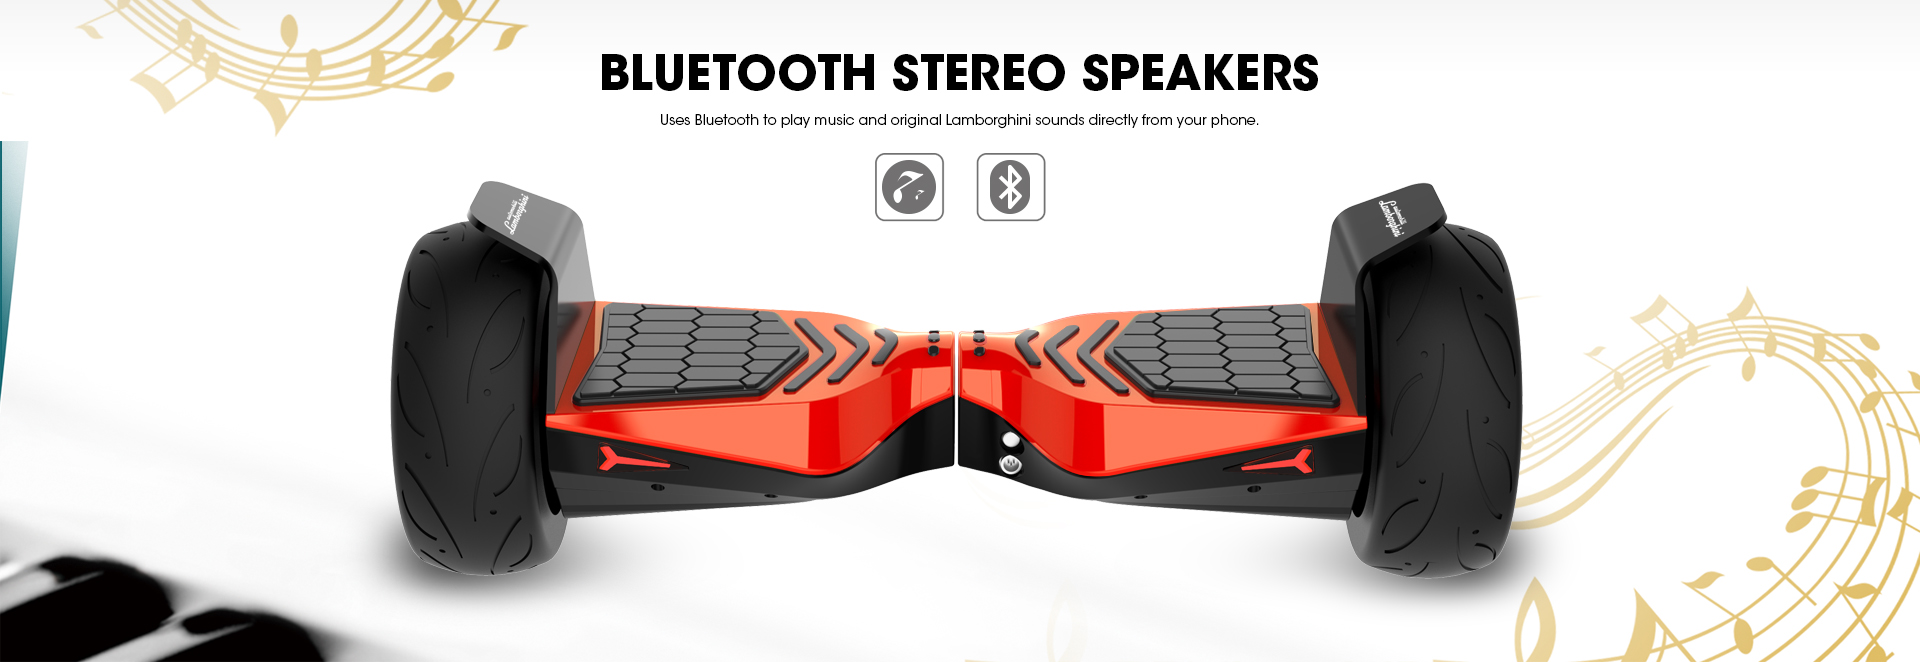 Red Lamborghini Hoverboard 8.5 inch Offical Automobili Lamborghini Authorized Hoverboard with Bluetooth Speaker & App